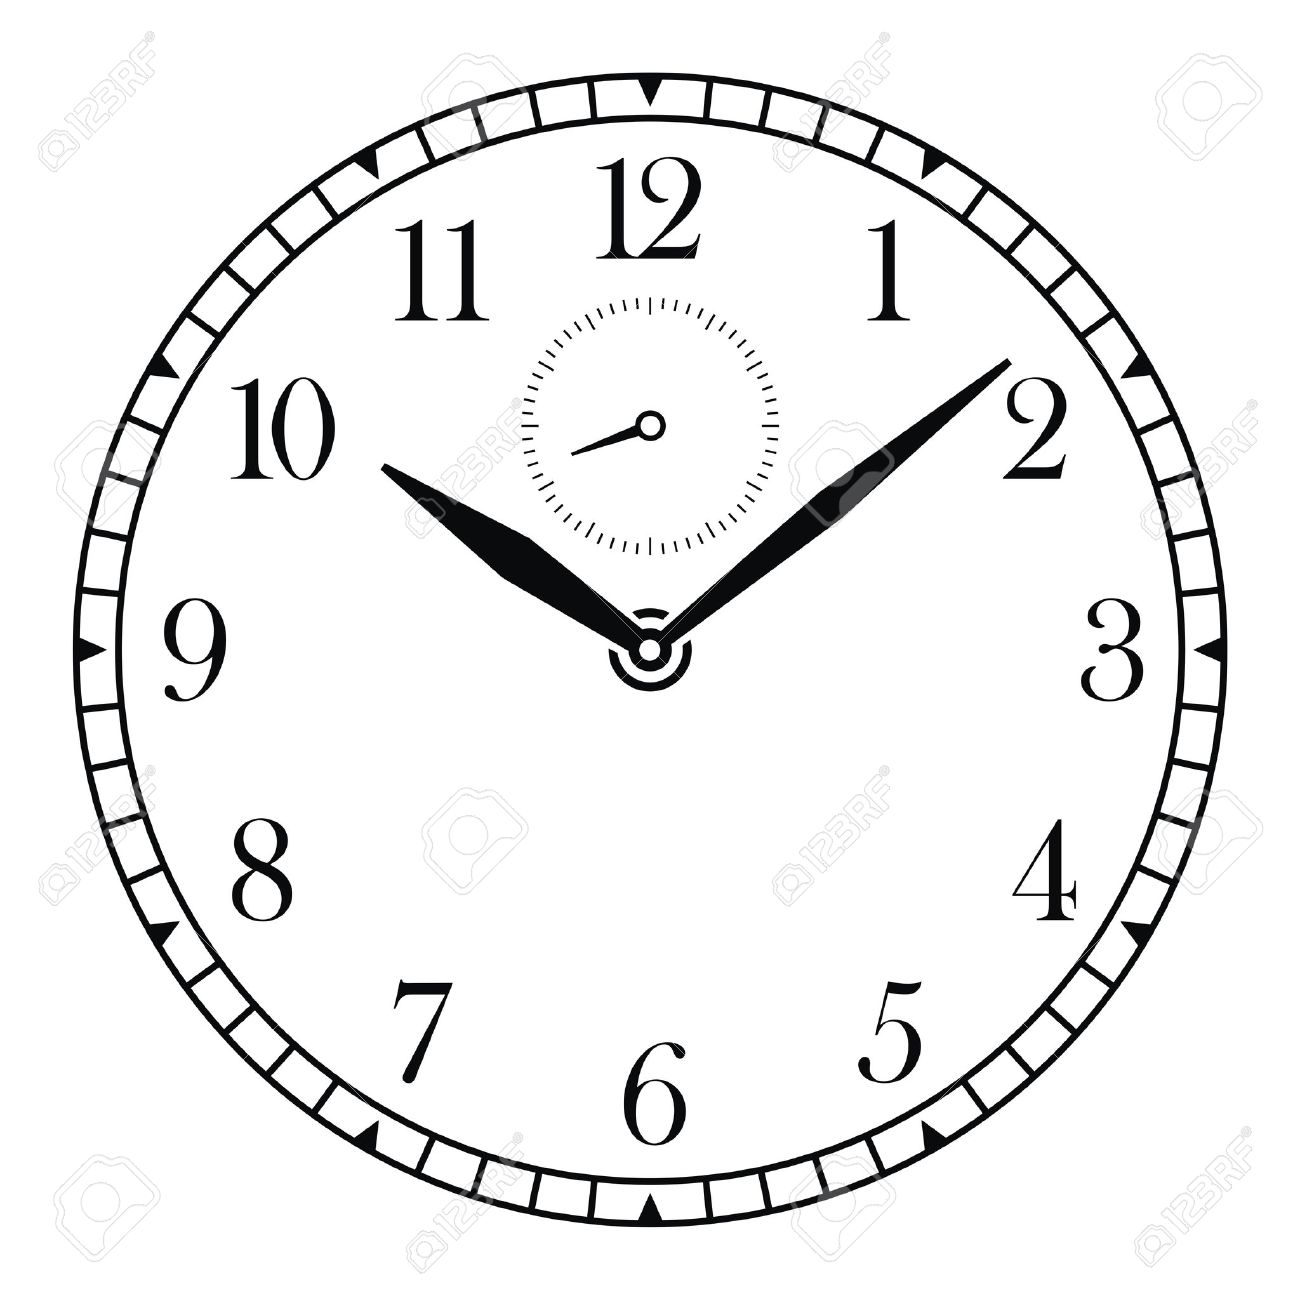 Clock Face Drawing at GetDrawings com | Free for personal use Clock